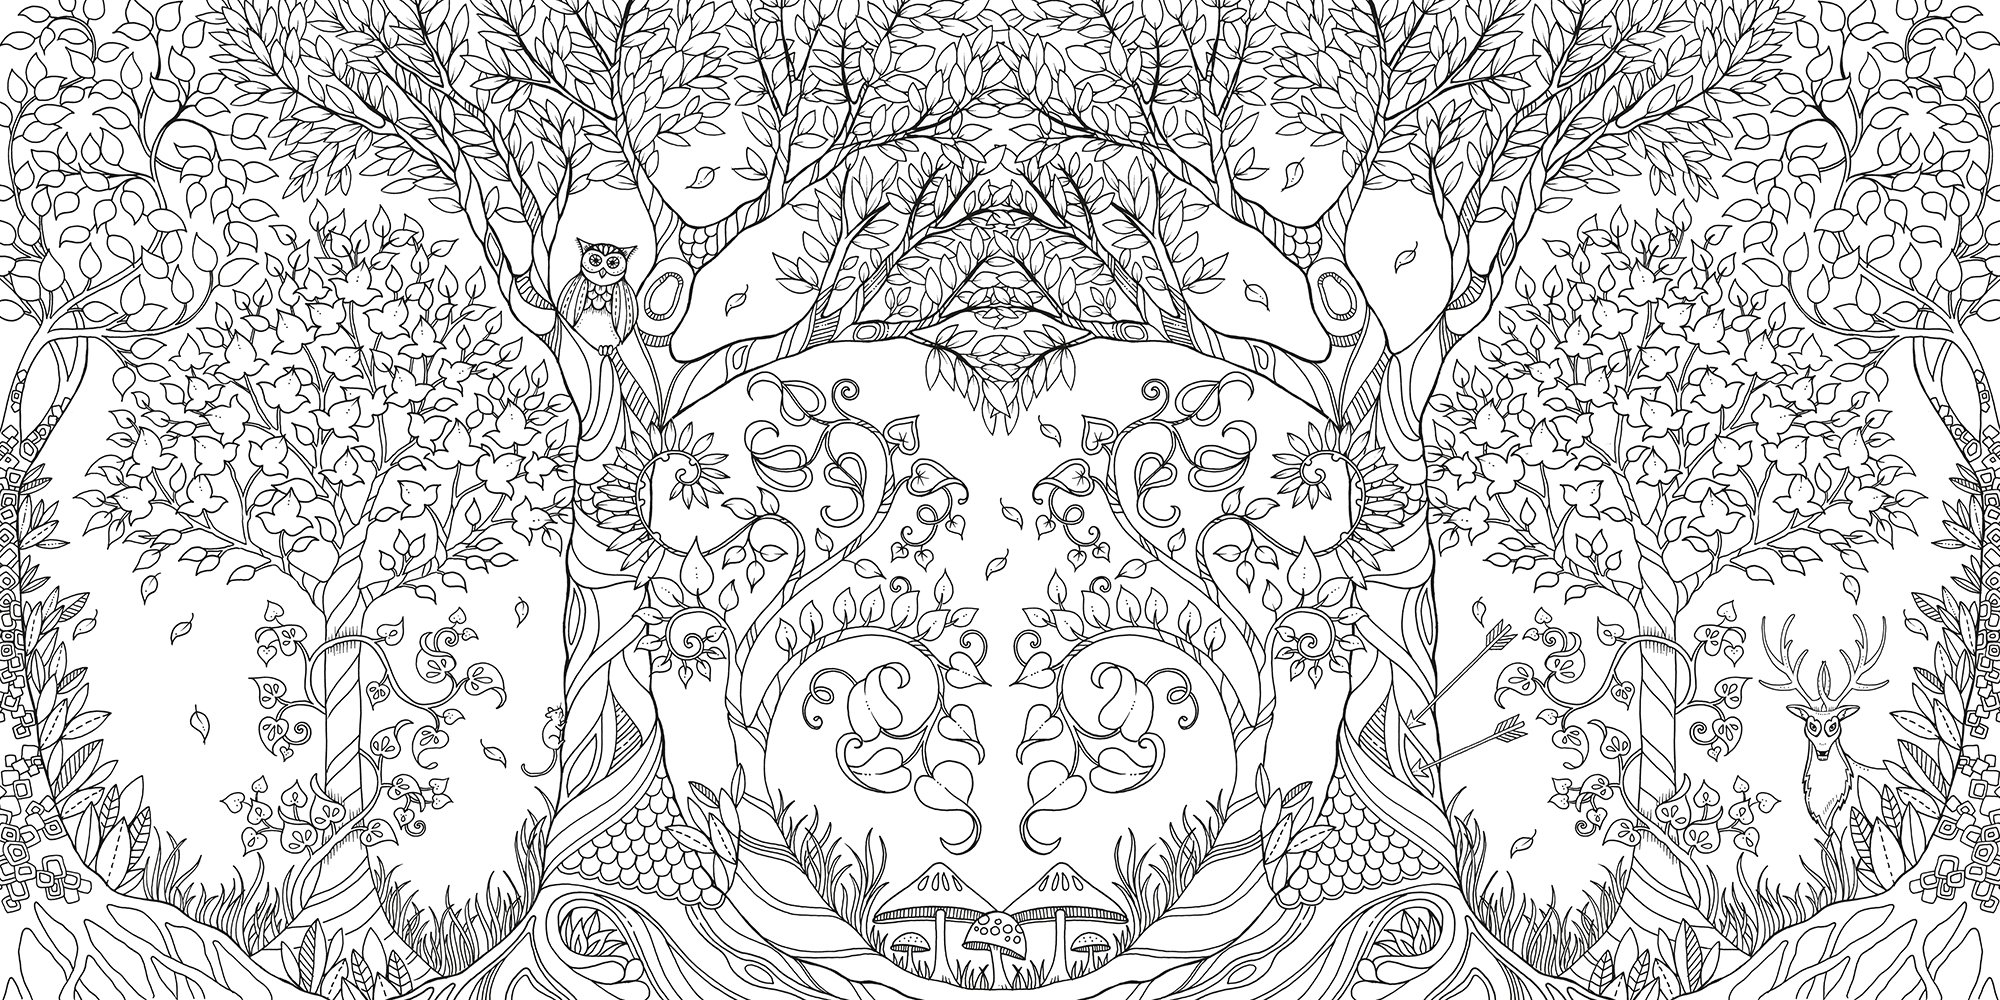 How much is the coloring book for adults - Amazon Com Enchanted Forest An Inky Quest Coloring Book 6063887956574 Johanna Basford Books